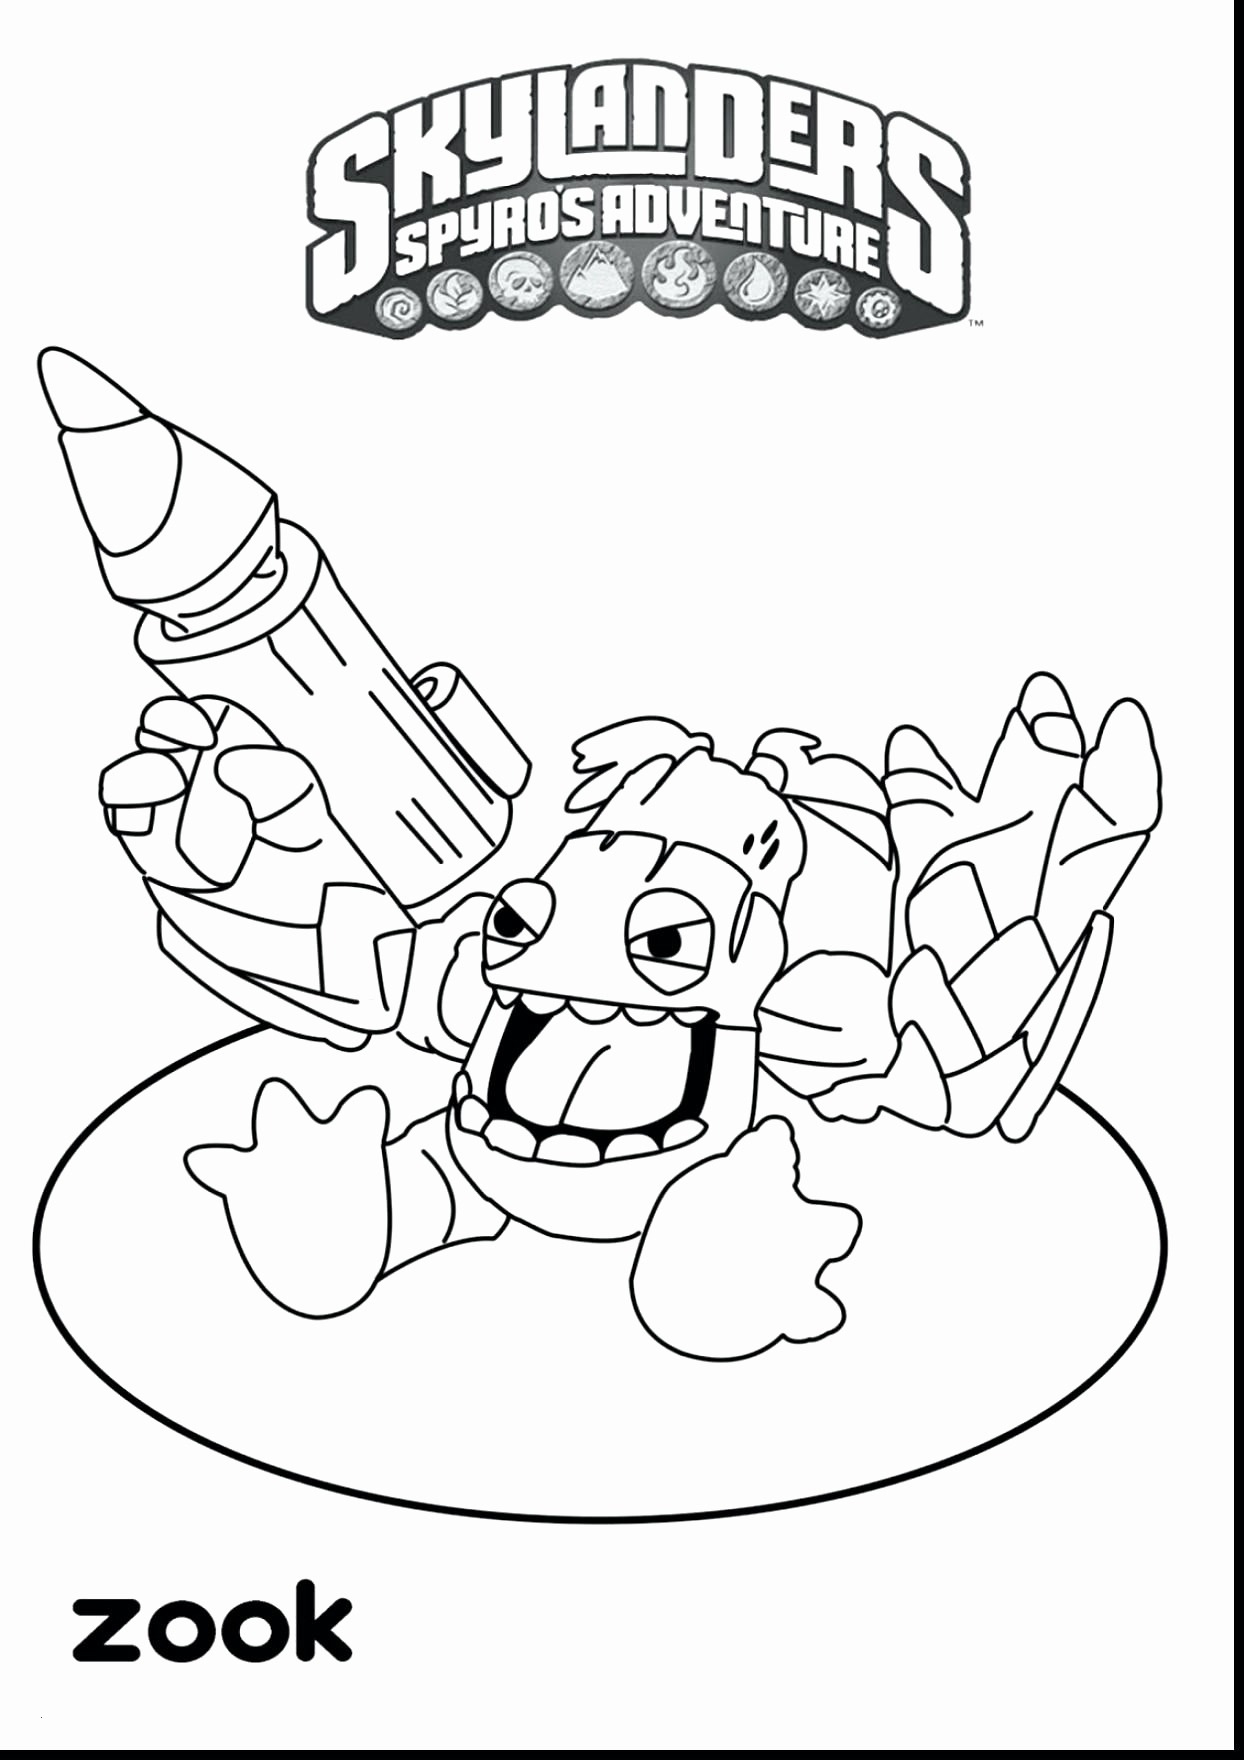 Anatomy and Physiology Coloring Pages Free  Collection 6p - To print for your project